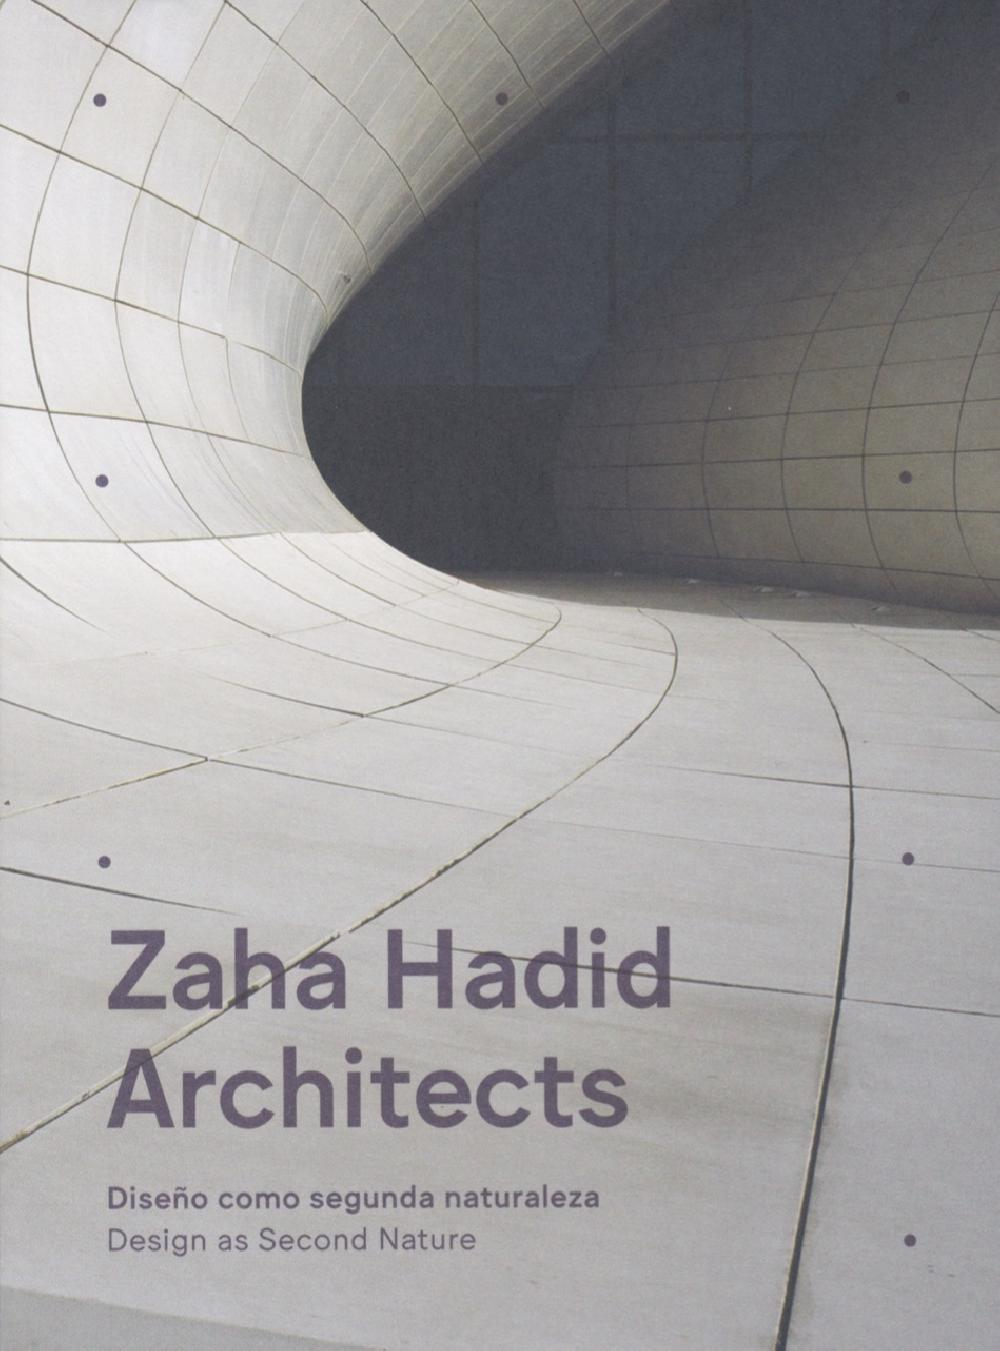 Zaha Hadid: Design as a second nature